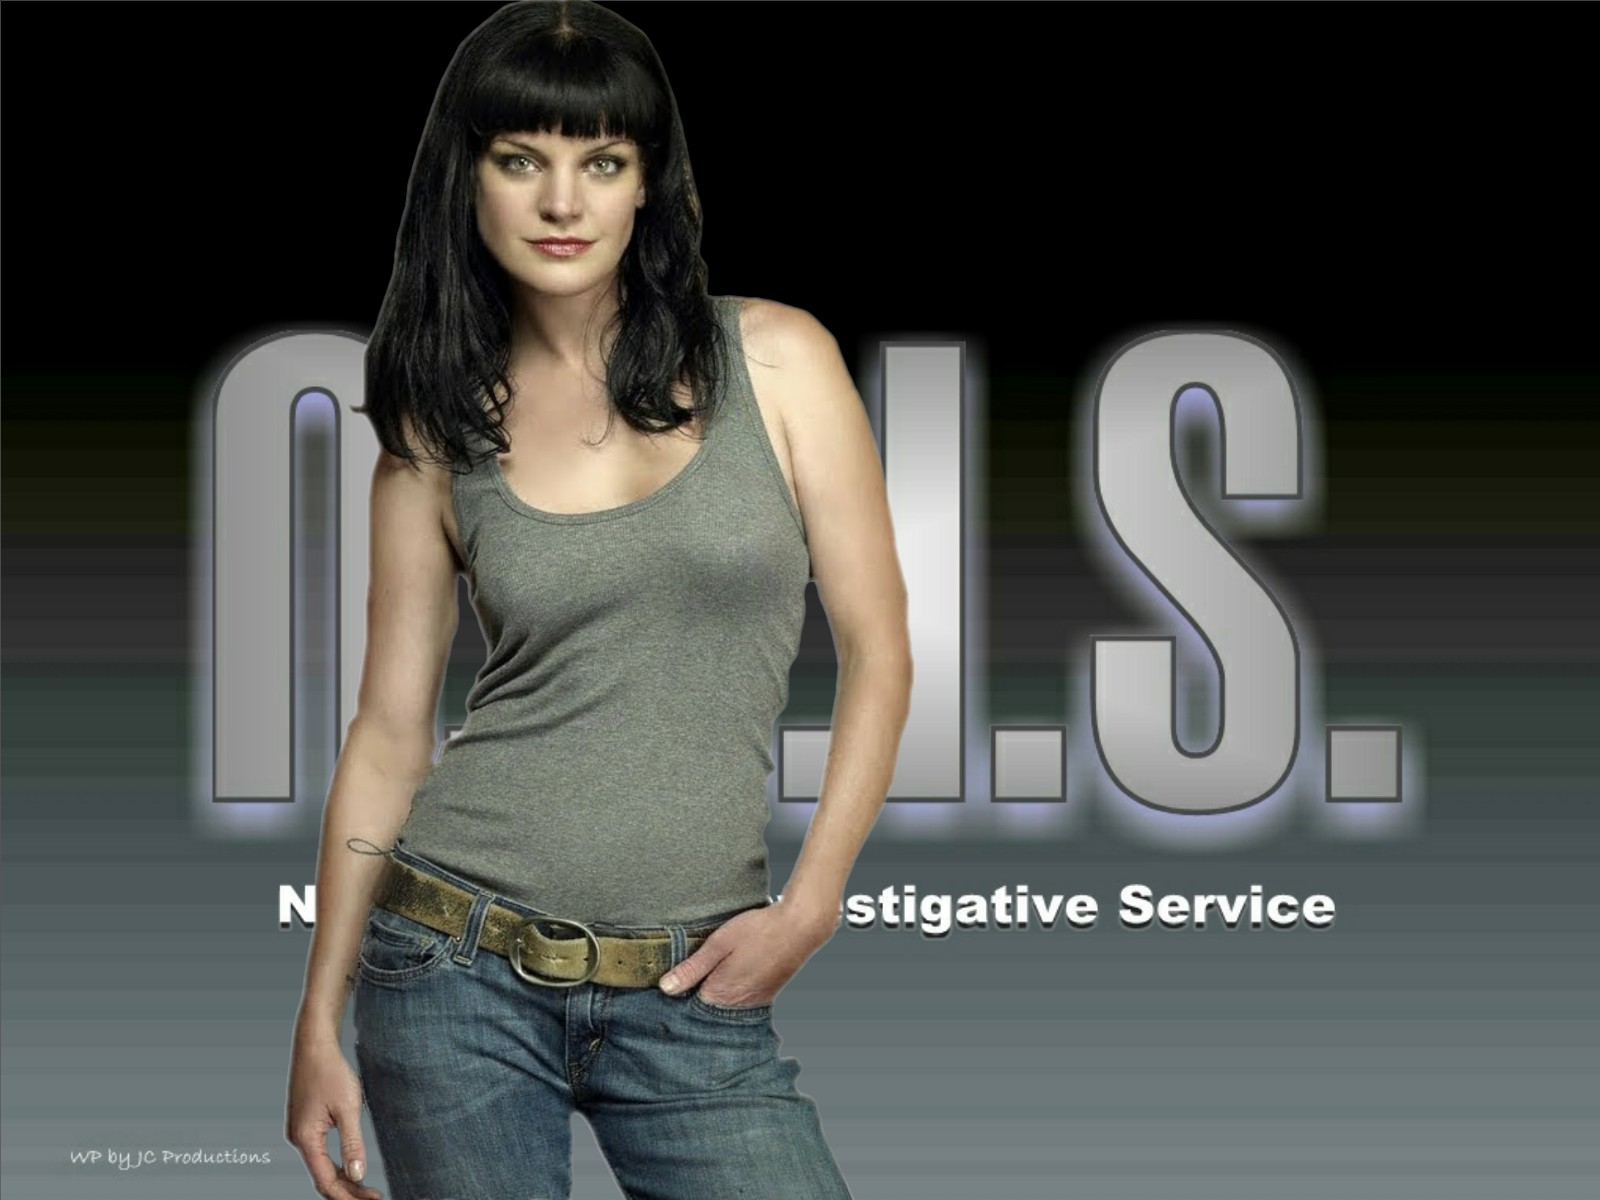 ncis girls images abby - photo #5